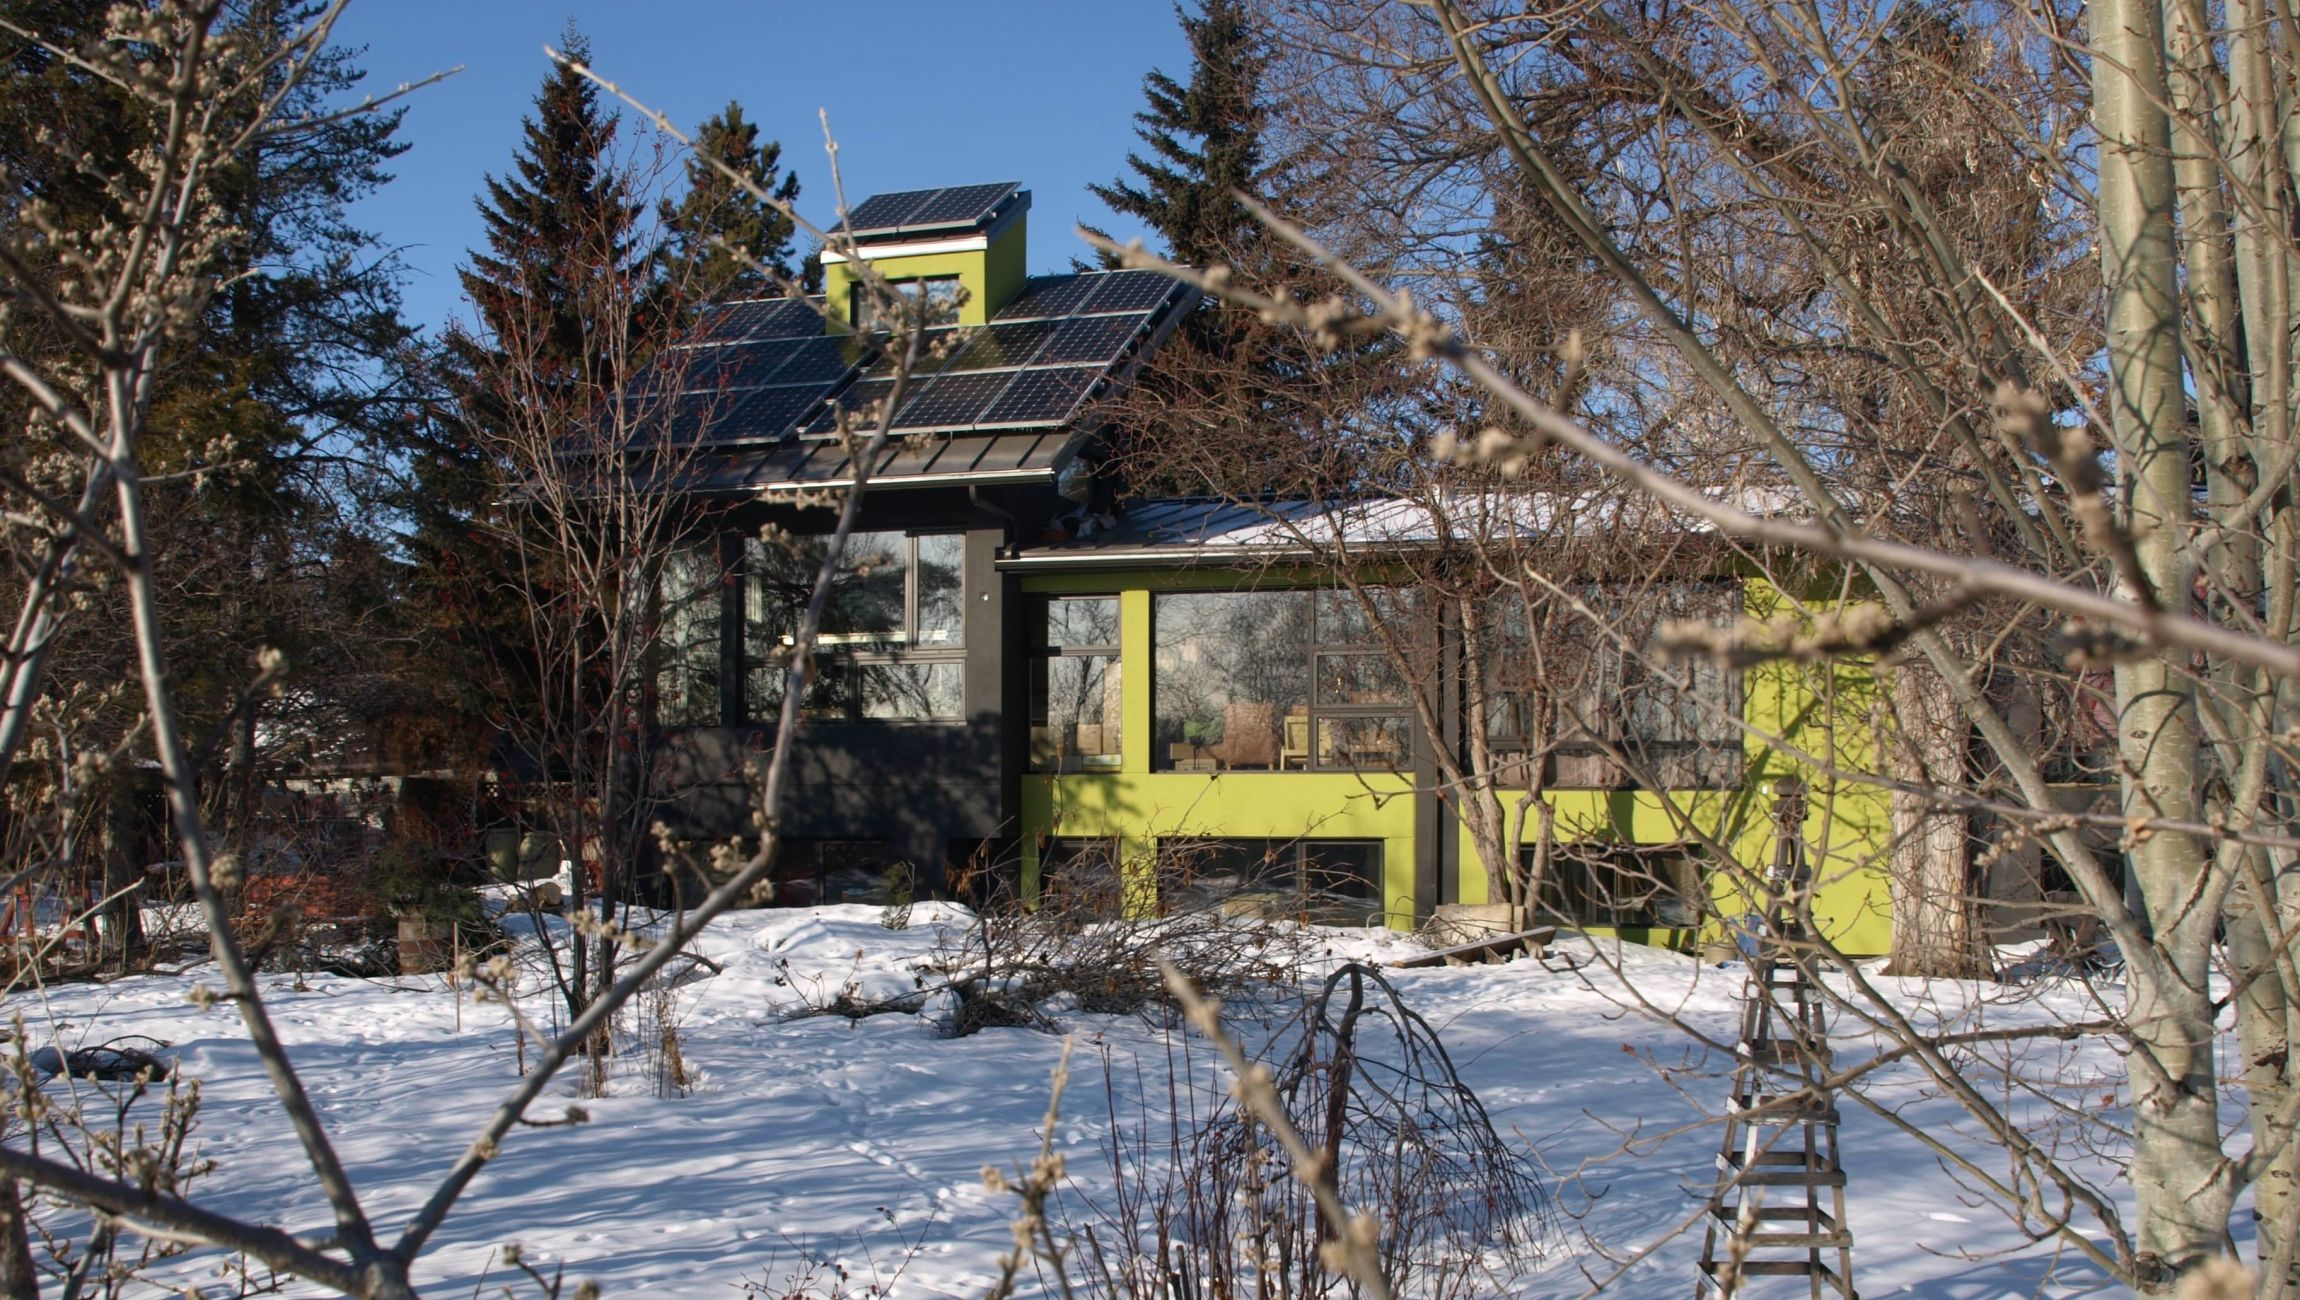 Edmonton roof-top PV system in Mill Creek Ravine